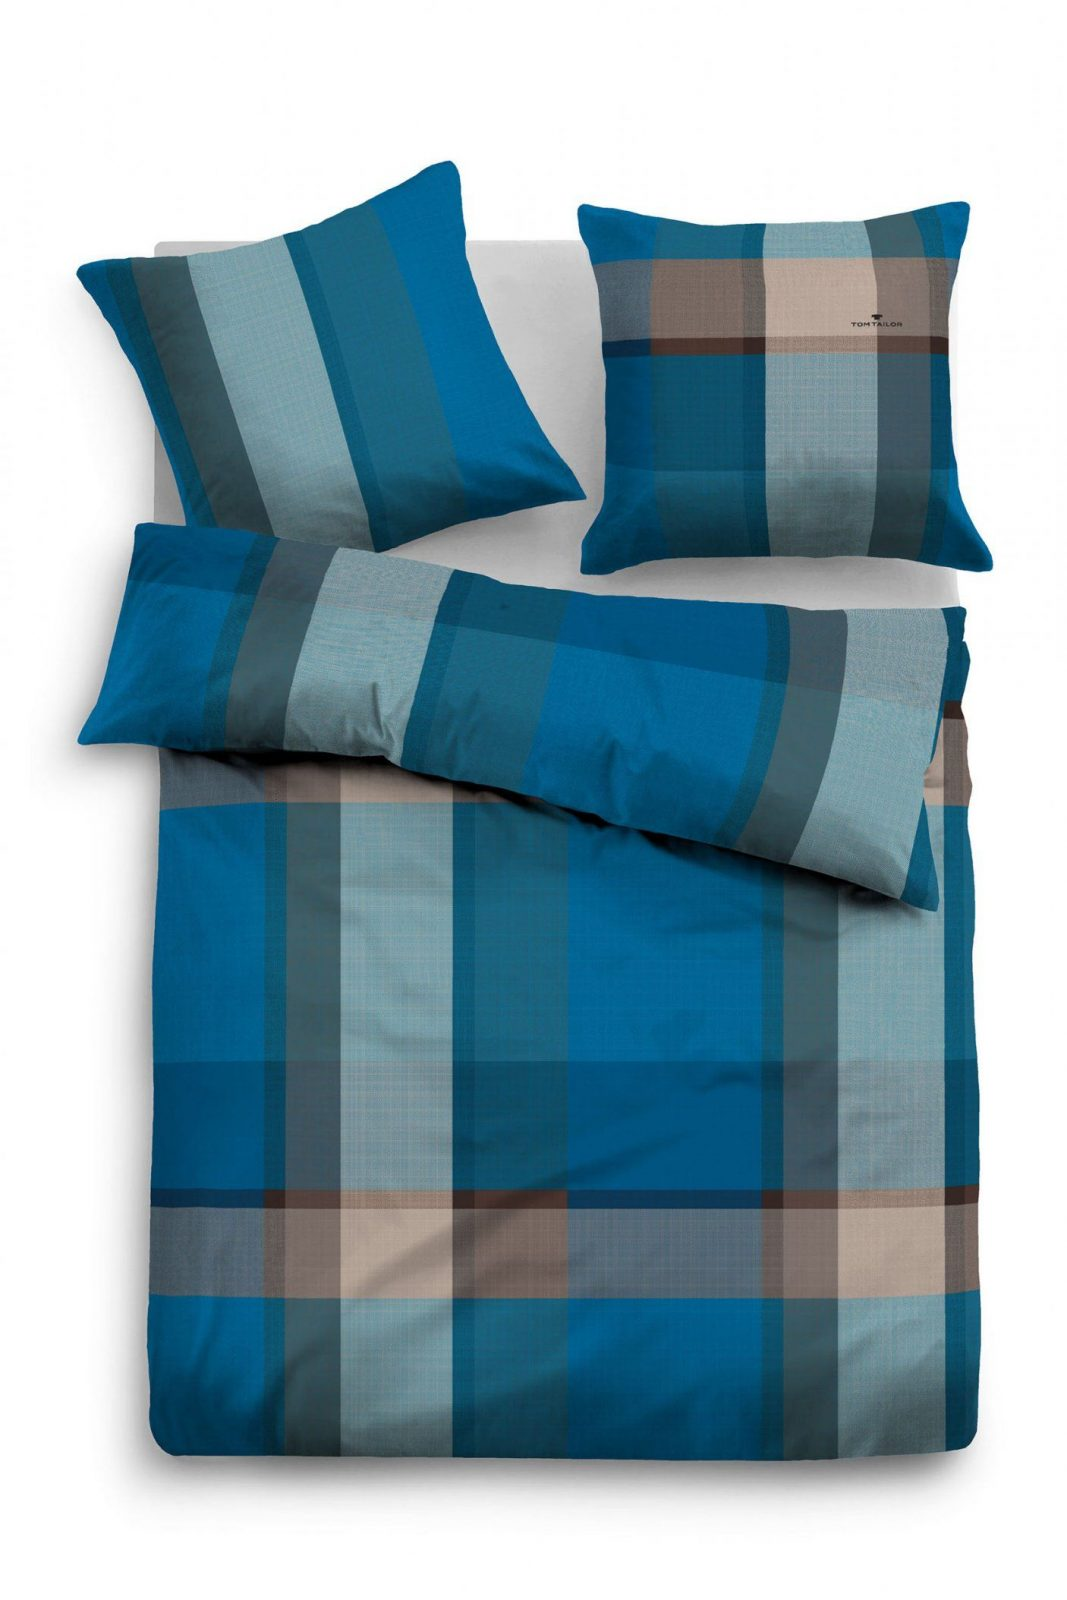 "Biber Bettwäsche Tom Tailor Tom Tailor Flanell Bettwäsche ""blue Plaid"" Blaugrau Beauty"